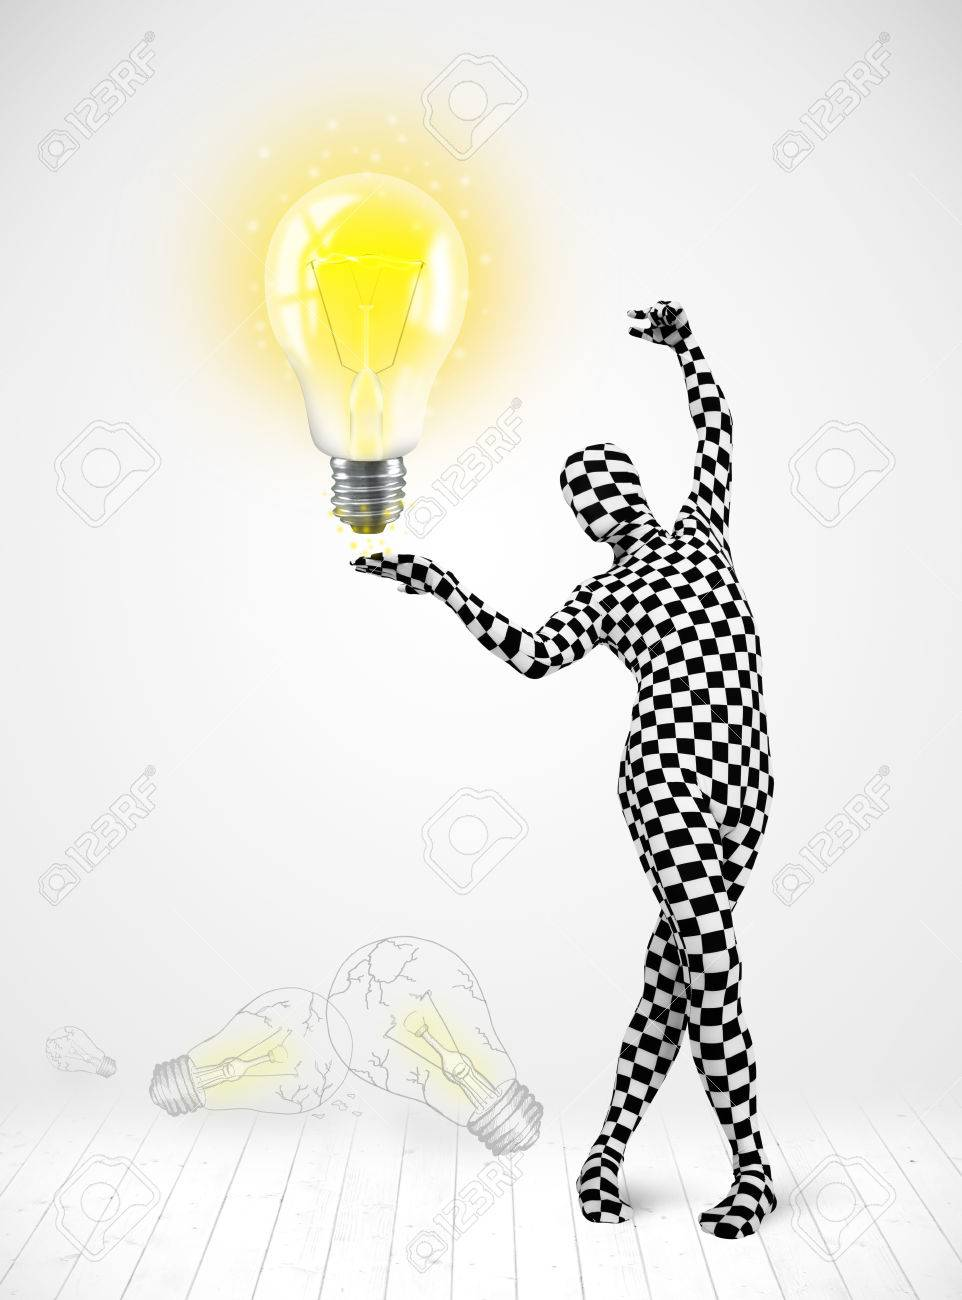 Funny man in full body suit with glowing light bulb, new idea concept Stock Photo - 23160360